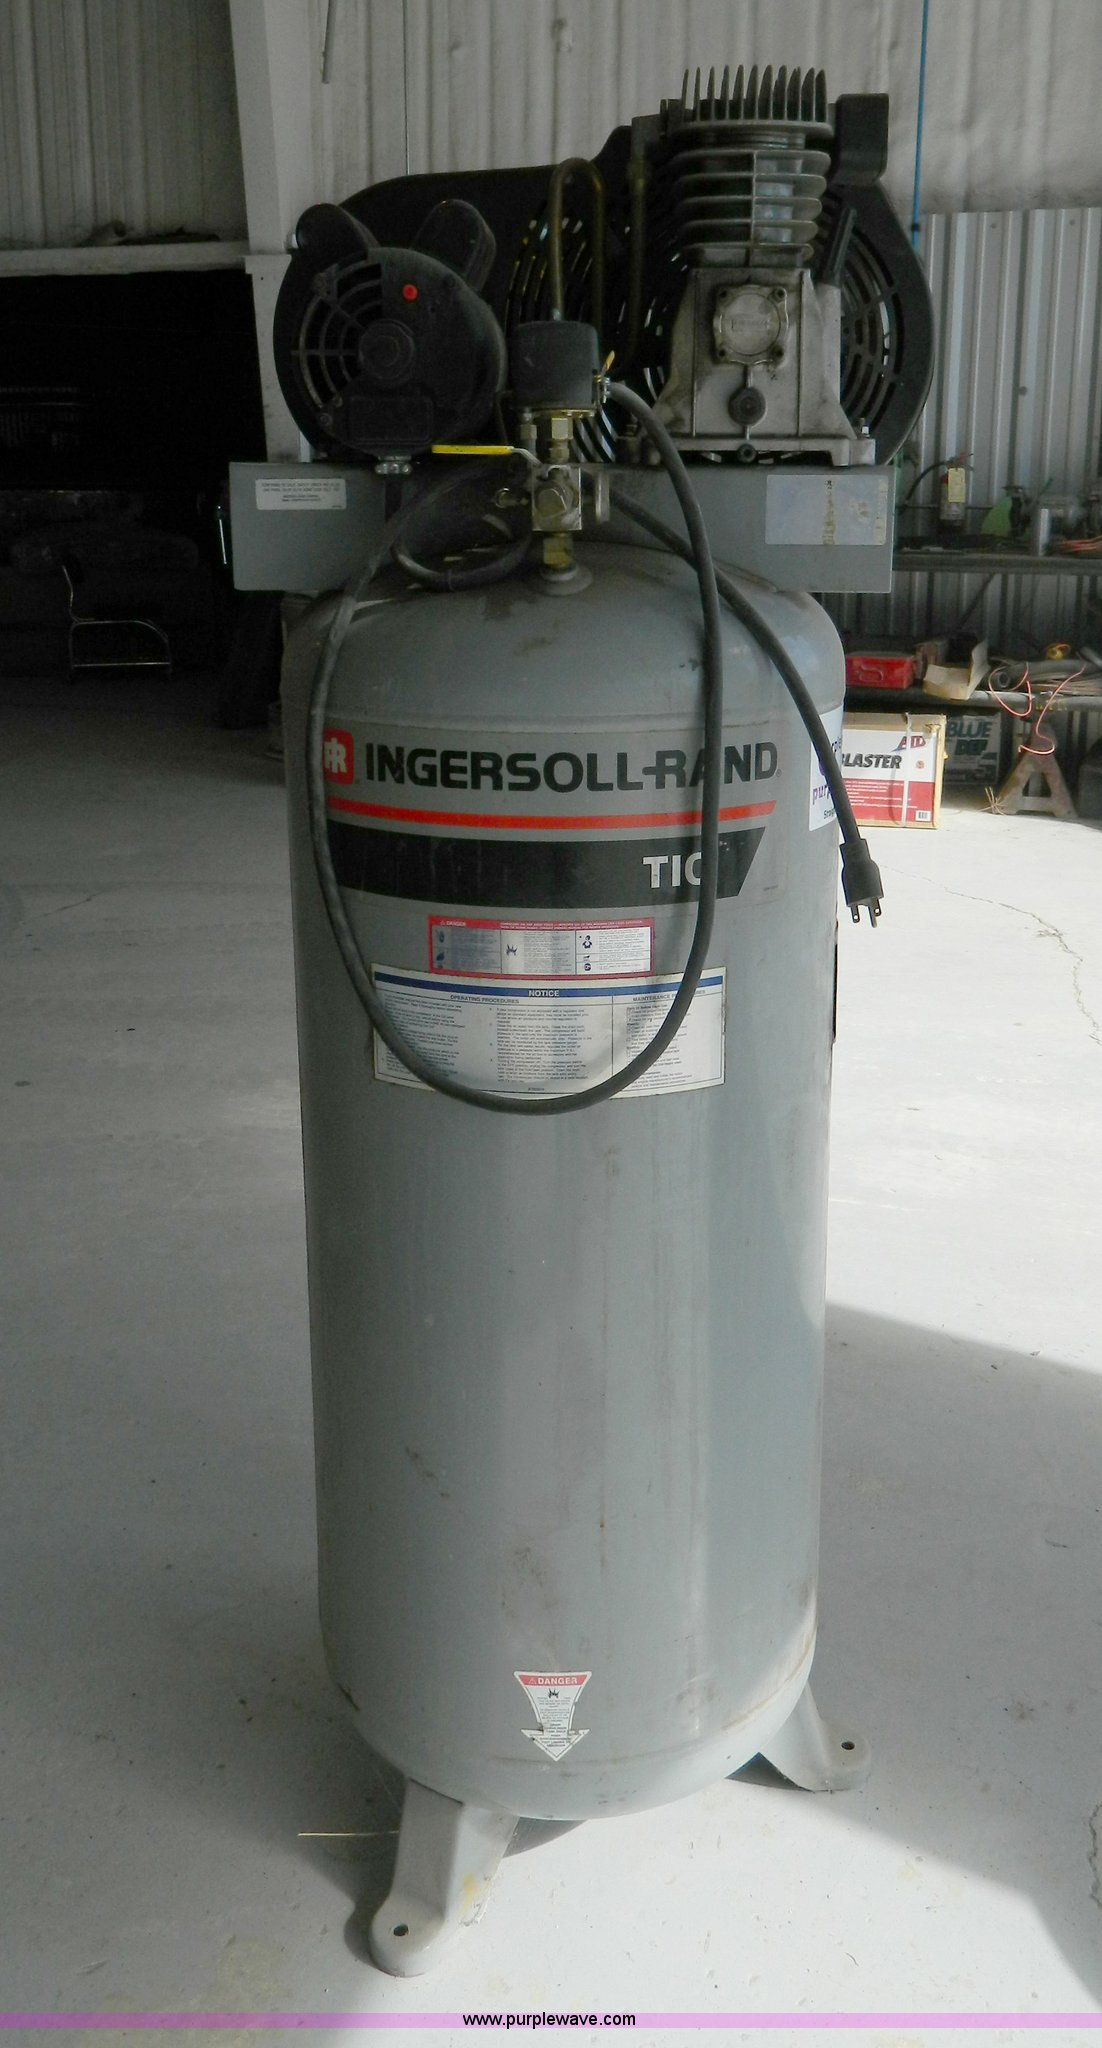 ... Ingersoll Rand T10 vertical air compressor Full size in new window ...